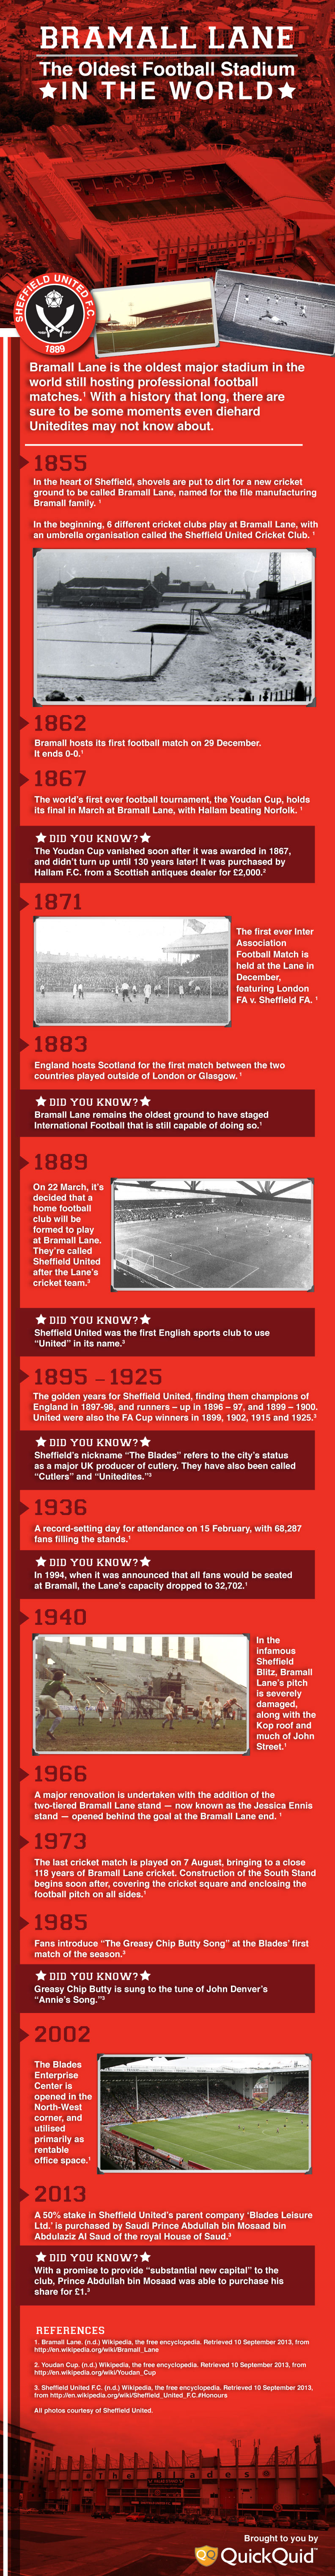 Bramall Lane – The Oldest Football Stadium in the World